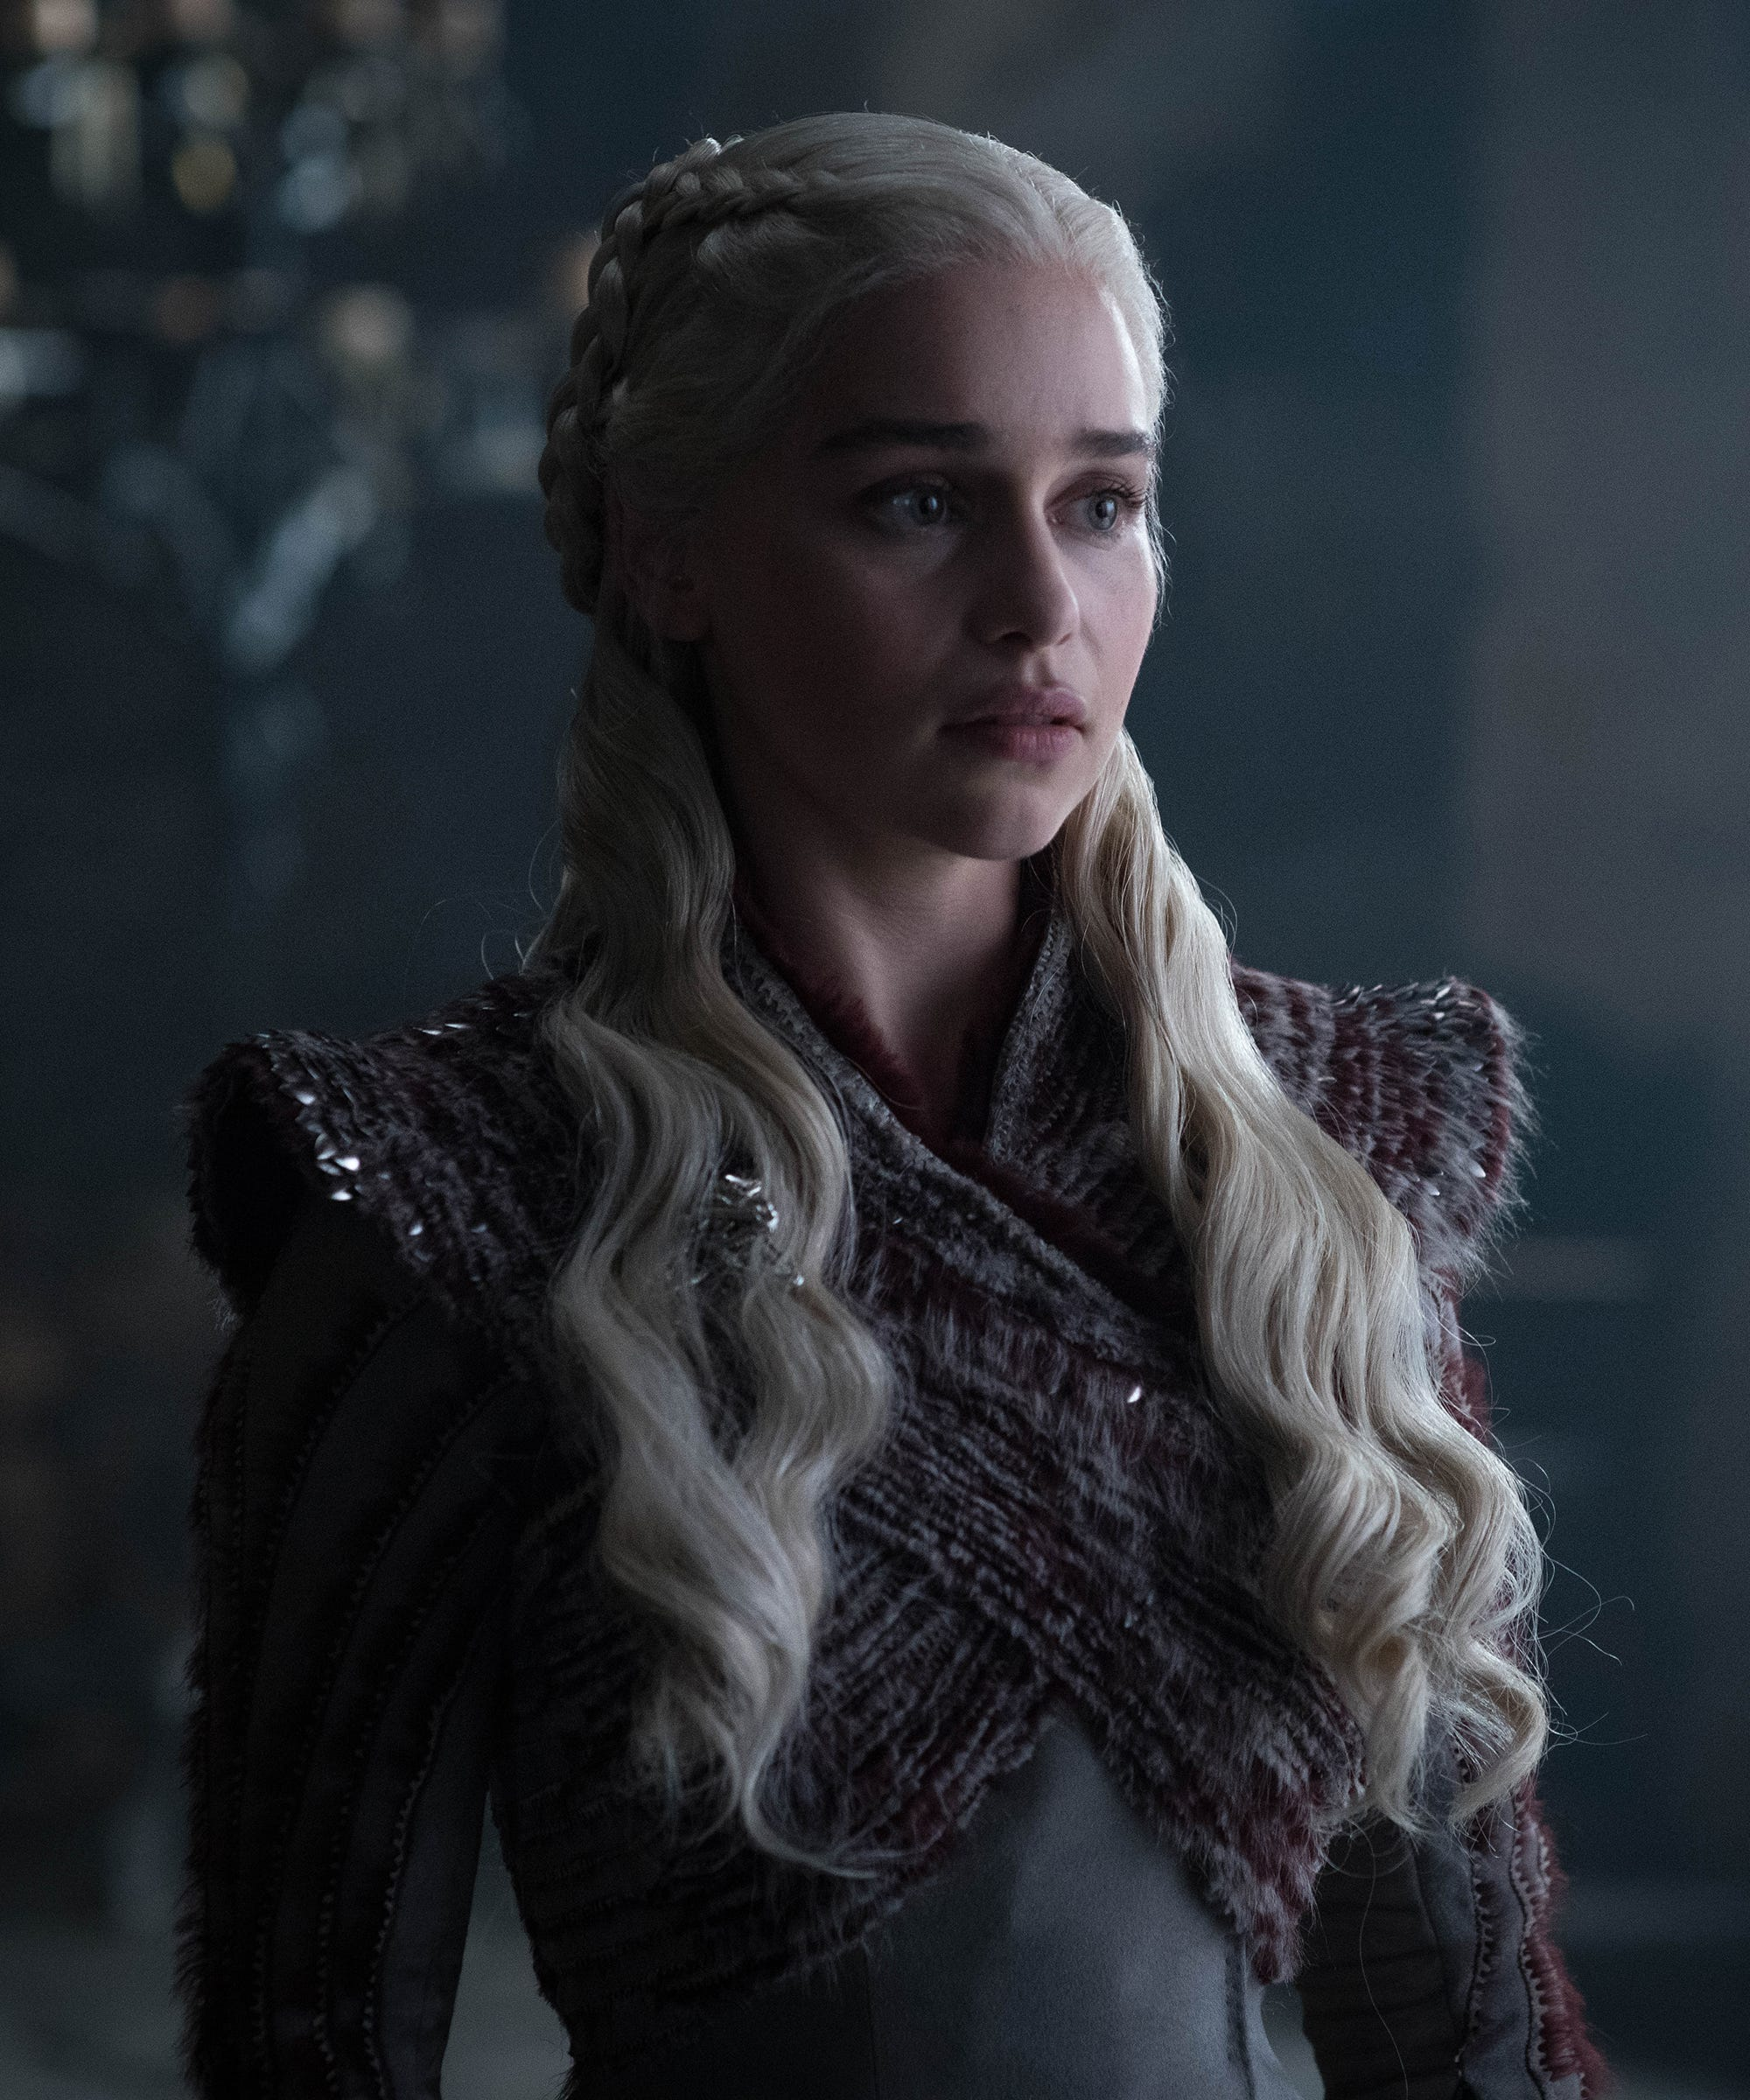 A New Reddit Theory Thinks Bran Is Behind Daenerys' Mad Queen Behavior